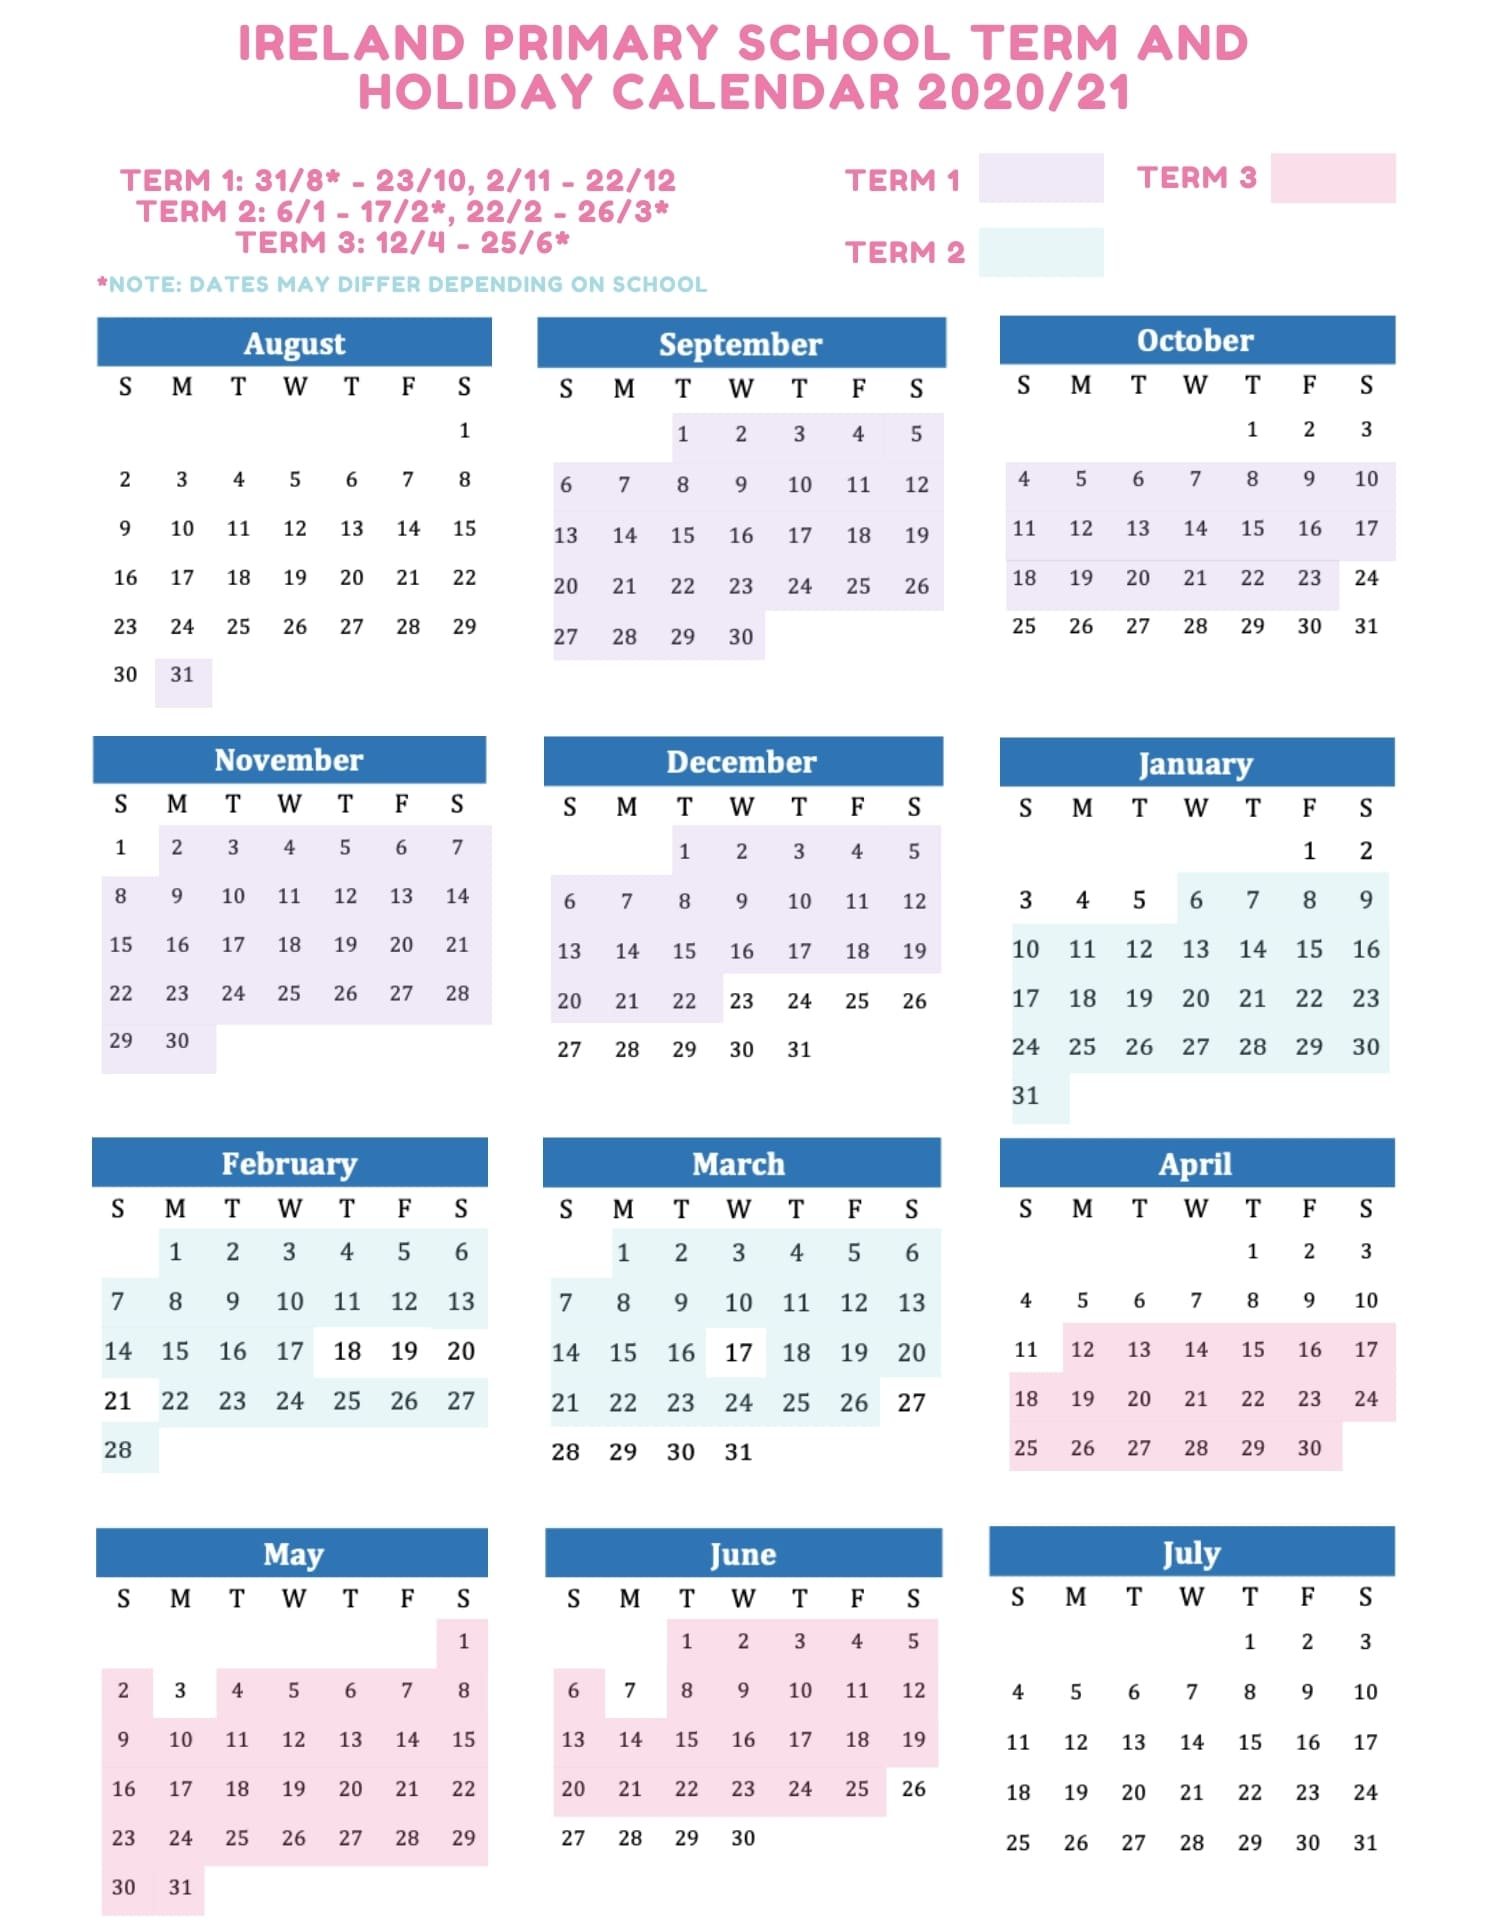 IE primary school term and holiday calendar 2020 2021